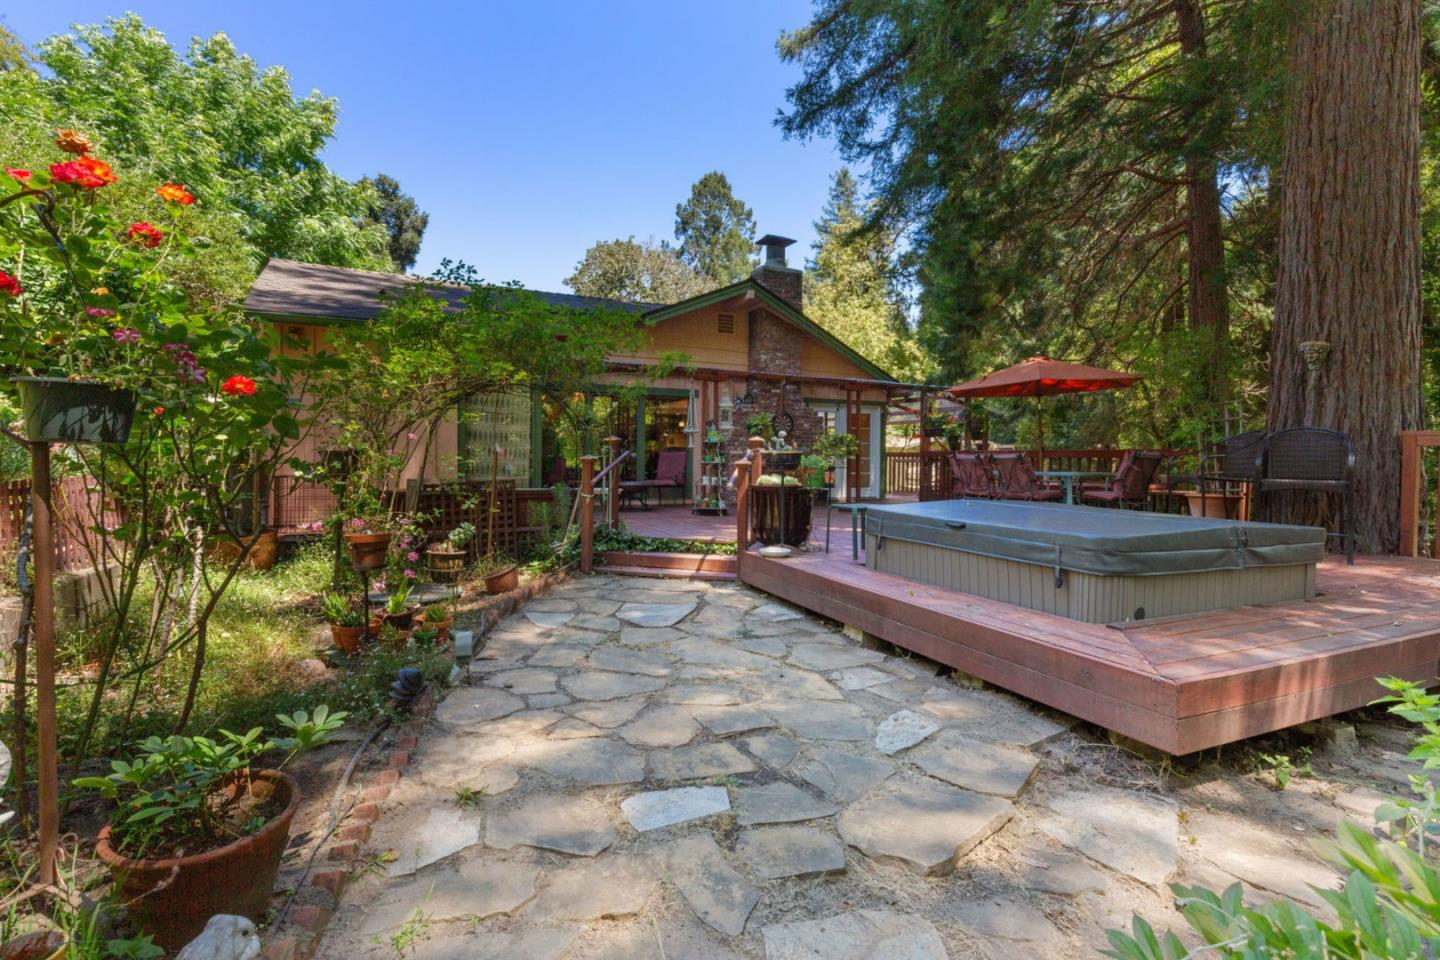 This 3 BR/2.5 BA on 0.9 acre creekside property has everything you need for everyday bliss! This home has a large great room with bamboo flooring, updated kitchen and dining areas, and a beautiful fireplace that acts as a focal-point. Downstairs bathroom has been recently remodeled with a jetted tub and a glass sink vanity. Master suite in upper level has vaulted ceilings and an ensuite bathroom. Guest bedroom has a built-in murphy bed! Roof and exterior paint from 2016 and 2018. The property located in a sunny, sought-after neighborhood is a true paradise with creek views, fragrant plants and roses, fresh mountain air, local wildlife, and large rear-deck featuring a hot tub and space for entertaining. For additional natural splendor Quail Hollow Ranch County Park with nature trails is only 1 mile away. 5 min from downtown Felton with Cremer House restaurant and White Raven cafe. The 30x30 garage has been converted into a music studio for, but can be used for many uses.